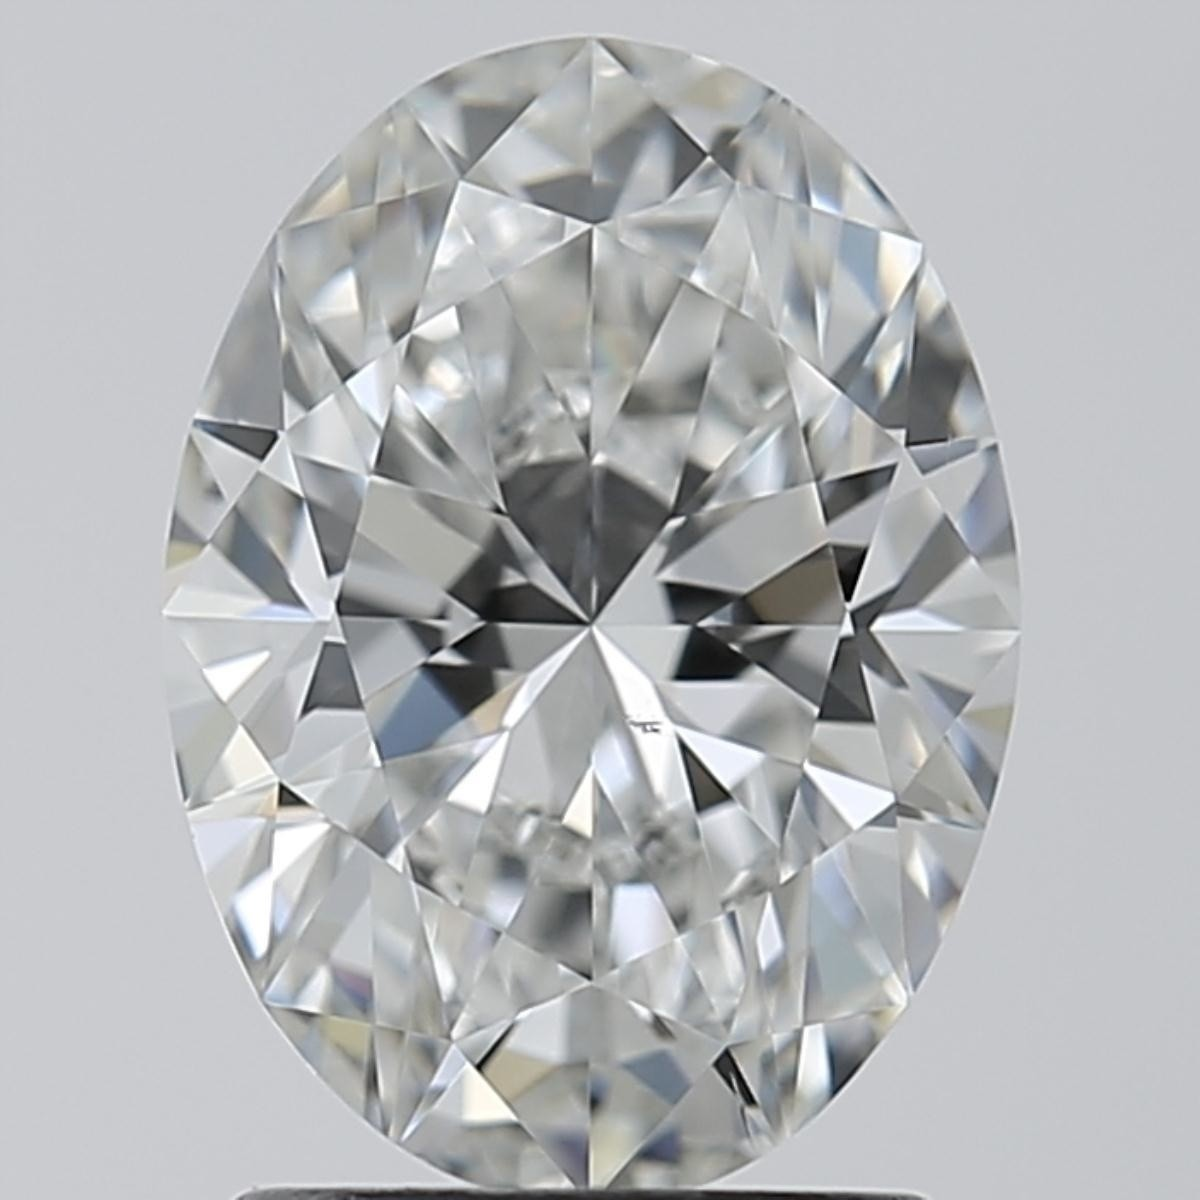 1.72 Carat Oval Diamond (G/VS2)